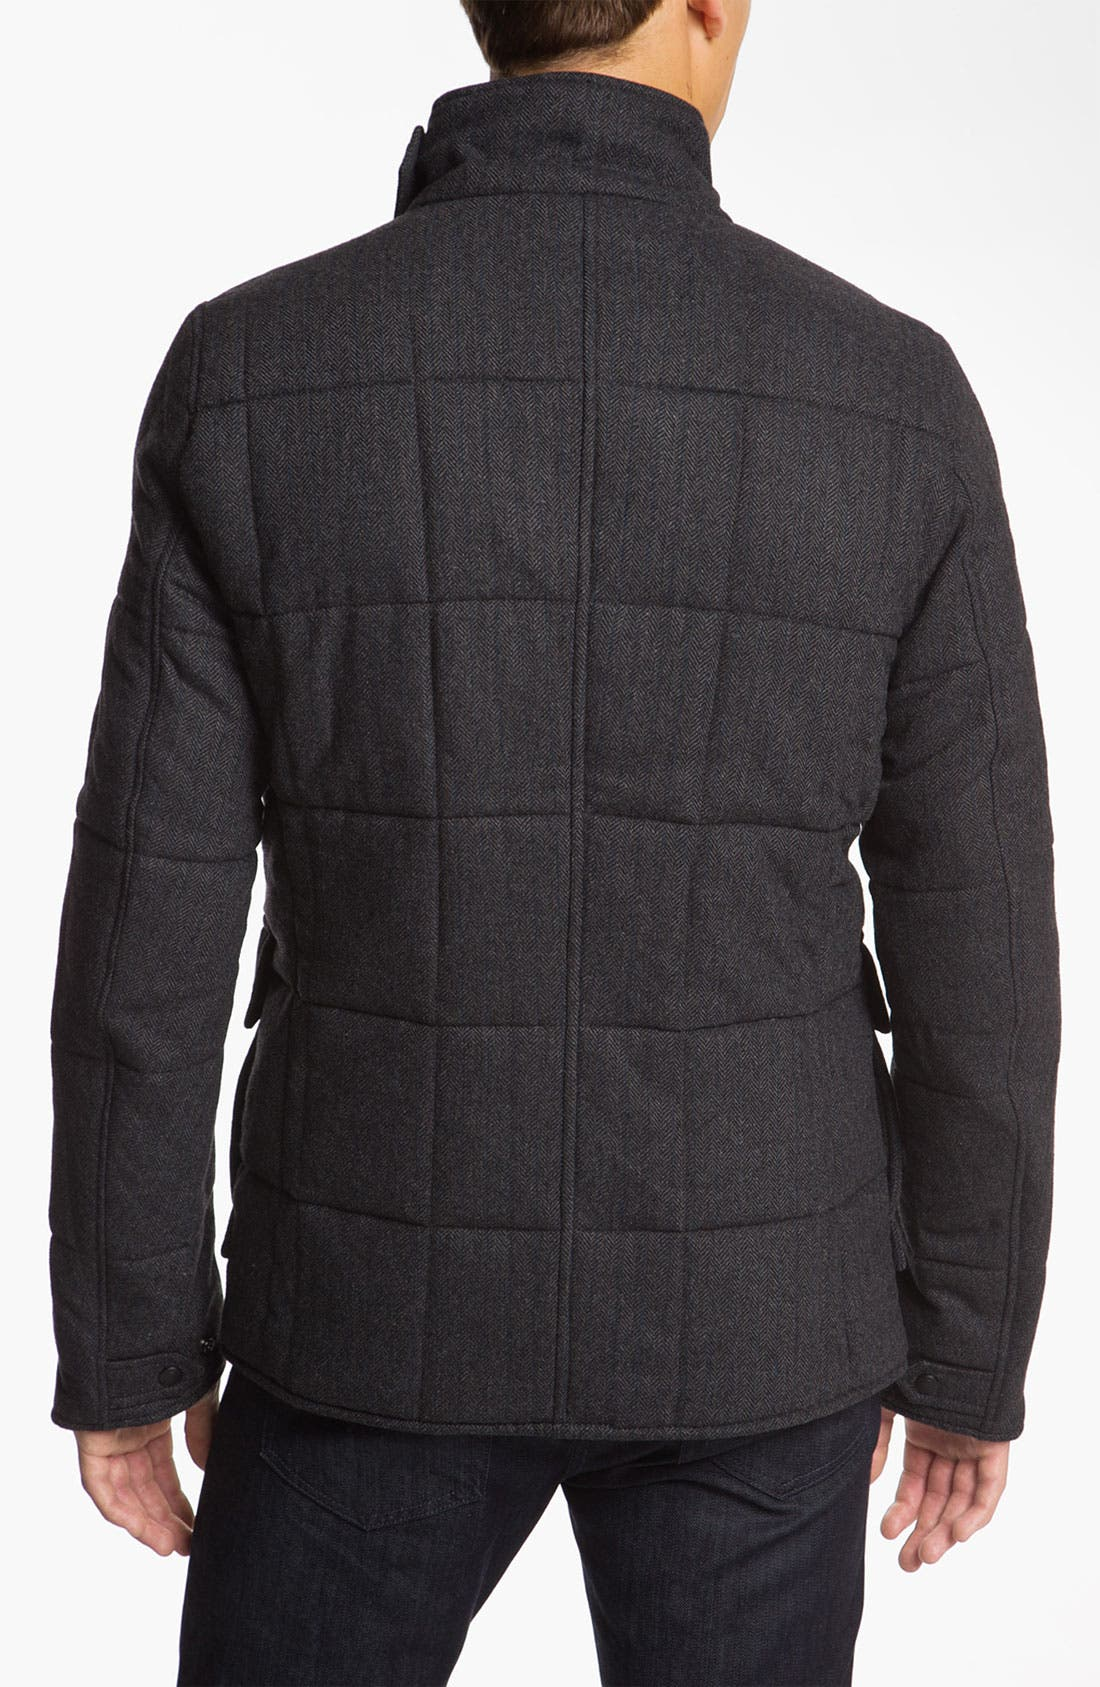 WOOLRICH JOHN RICH,                             Woolrich 'Blizzard' Quilted Jacket,                             Alternate thumbnail 2, color,                             020